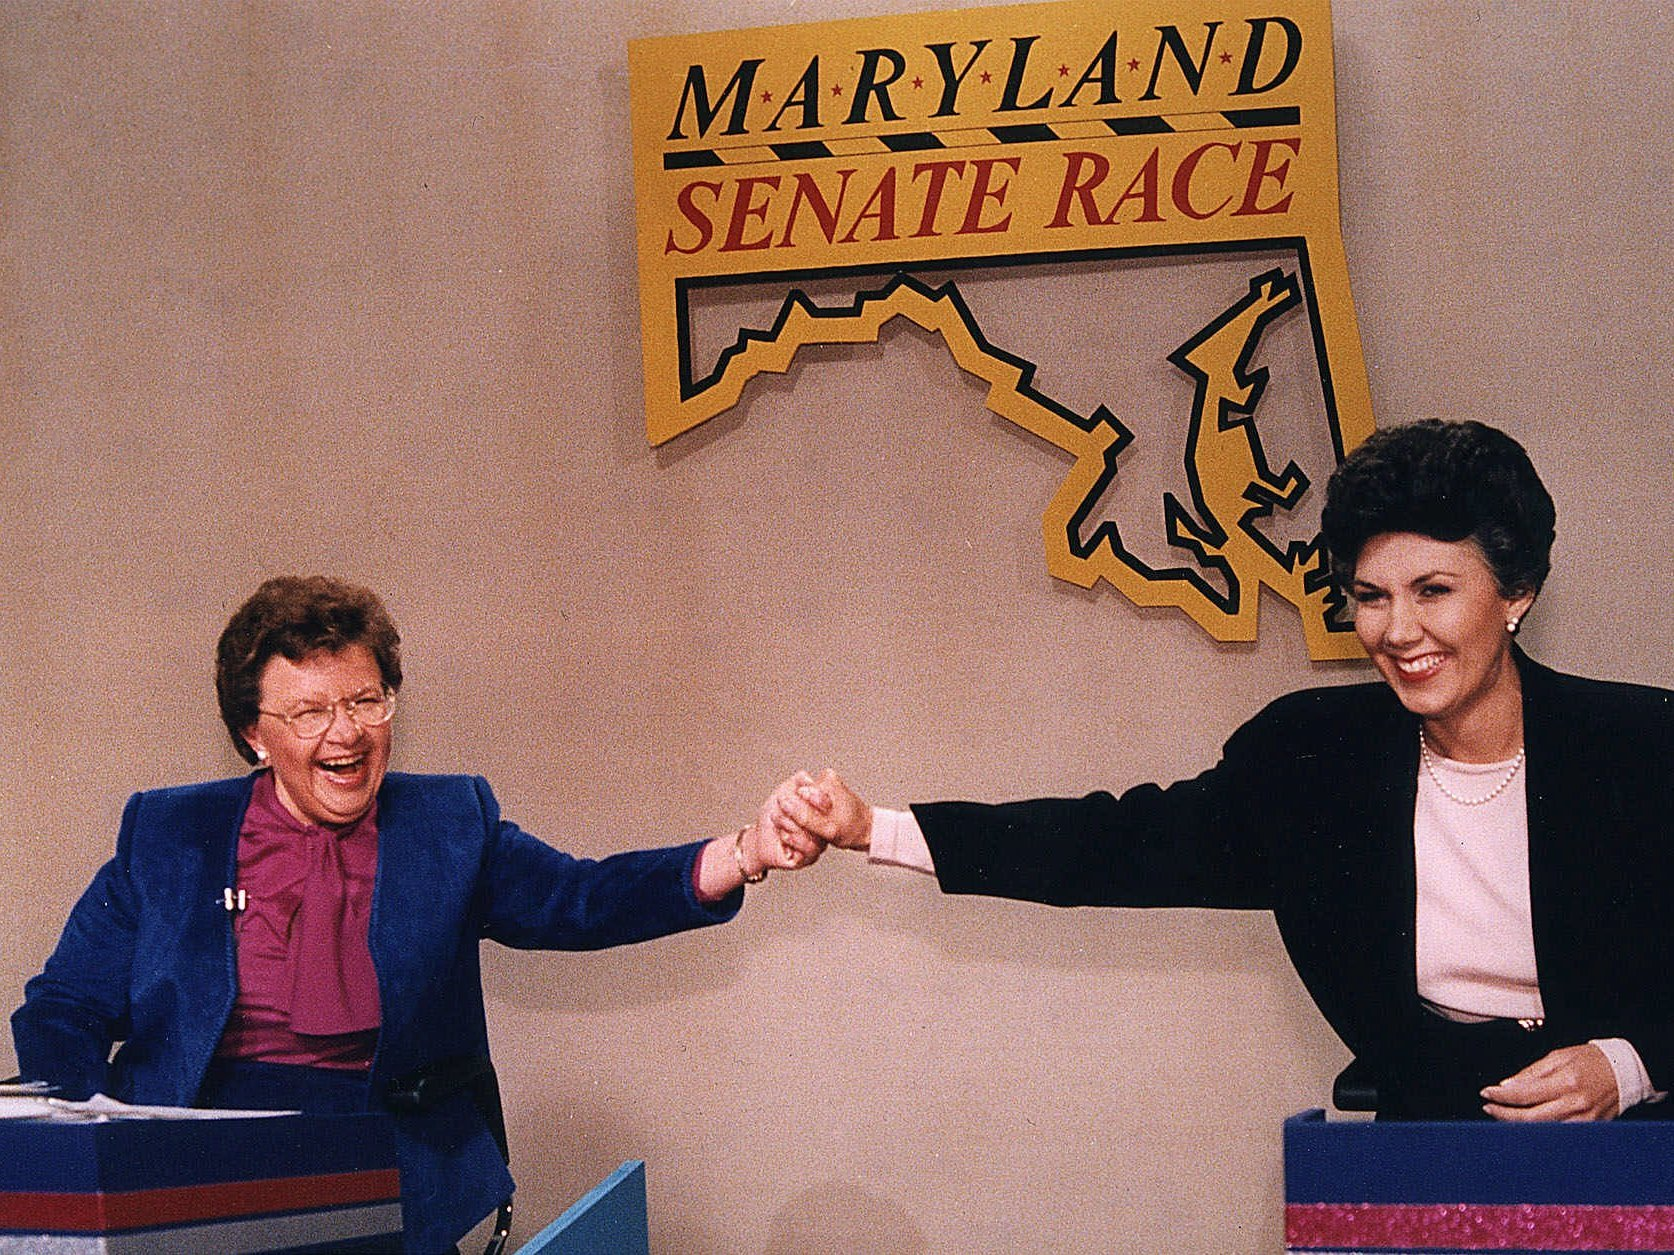 Mikulski, left, and her then-opponent Linda Chavez hold hands before the Maryland Senate candidates debate in 1986. J. Scott Applewhite/AP